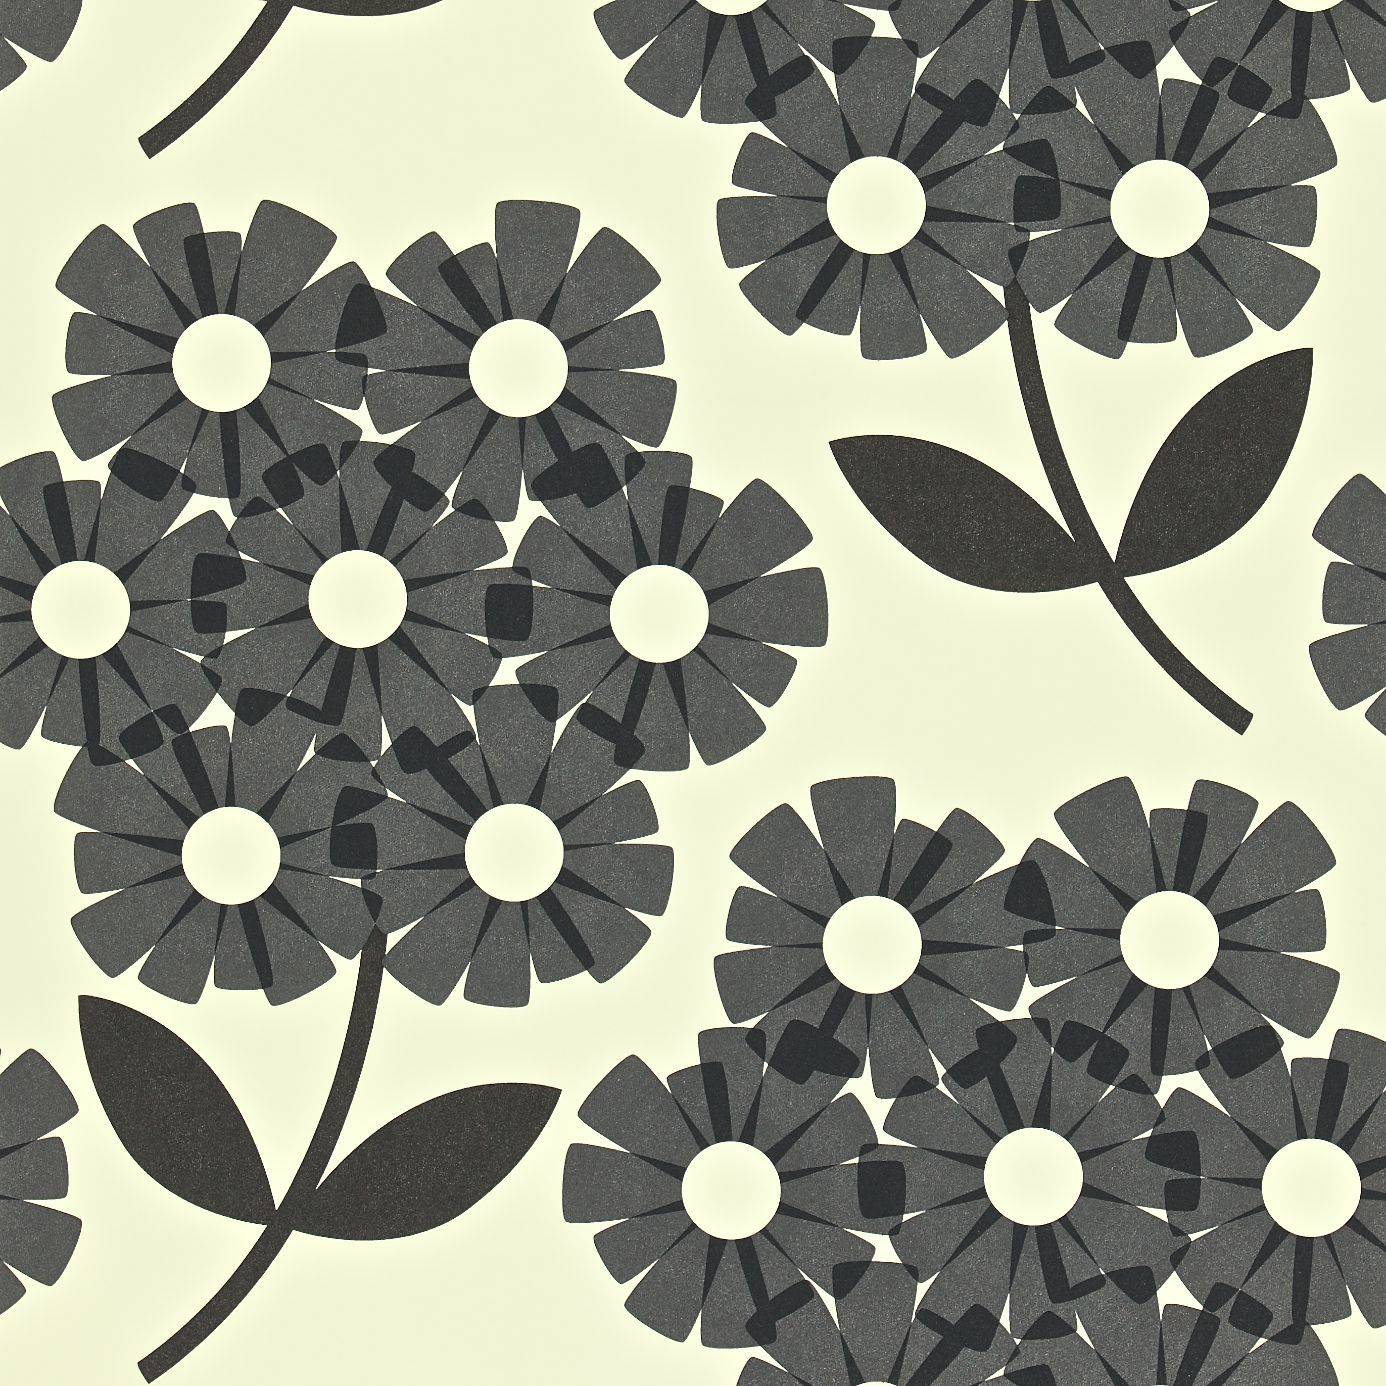 giant rhododendron wallpaper slate 110412 harlequin orla kiely wallpapers collection. Black Bedroom Furniture Sets. Home Design Ideas